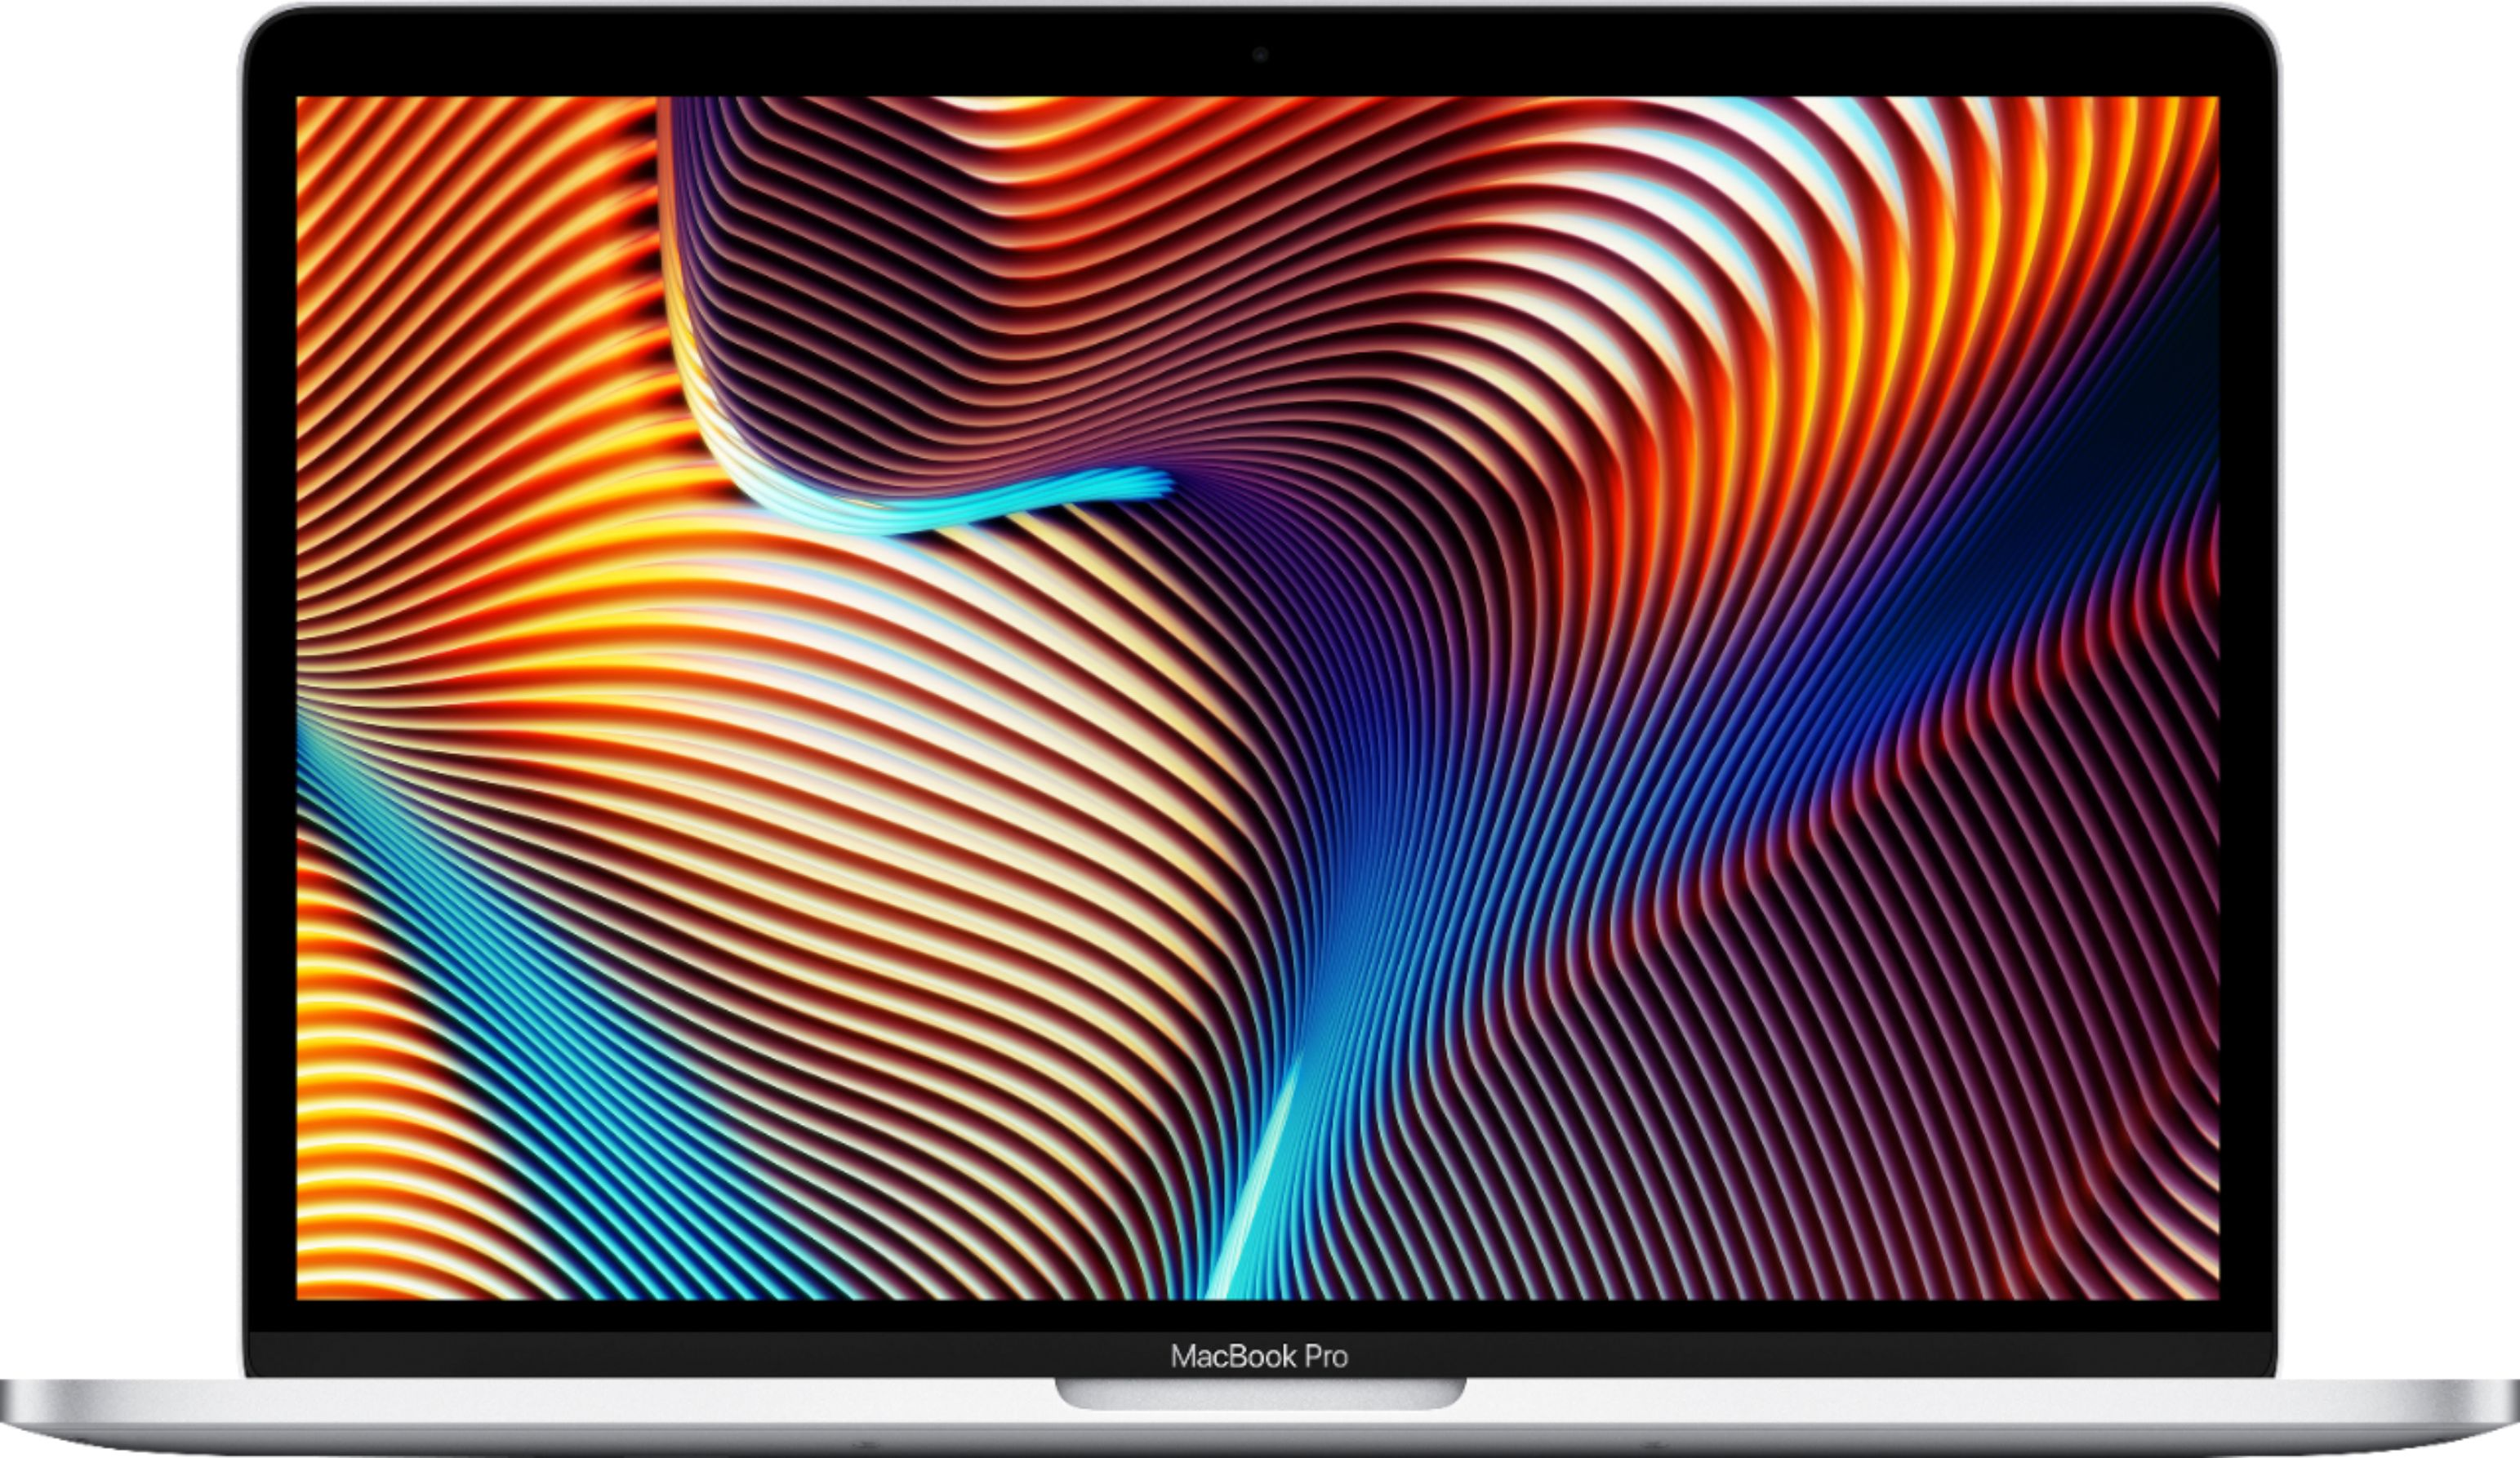 """Front Zoom. Apple - MacBook Pro - 13"""" Display with Touch Bar - Intel Core i5 - 16GB Memory - 256GB SSD - Silver."""